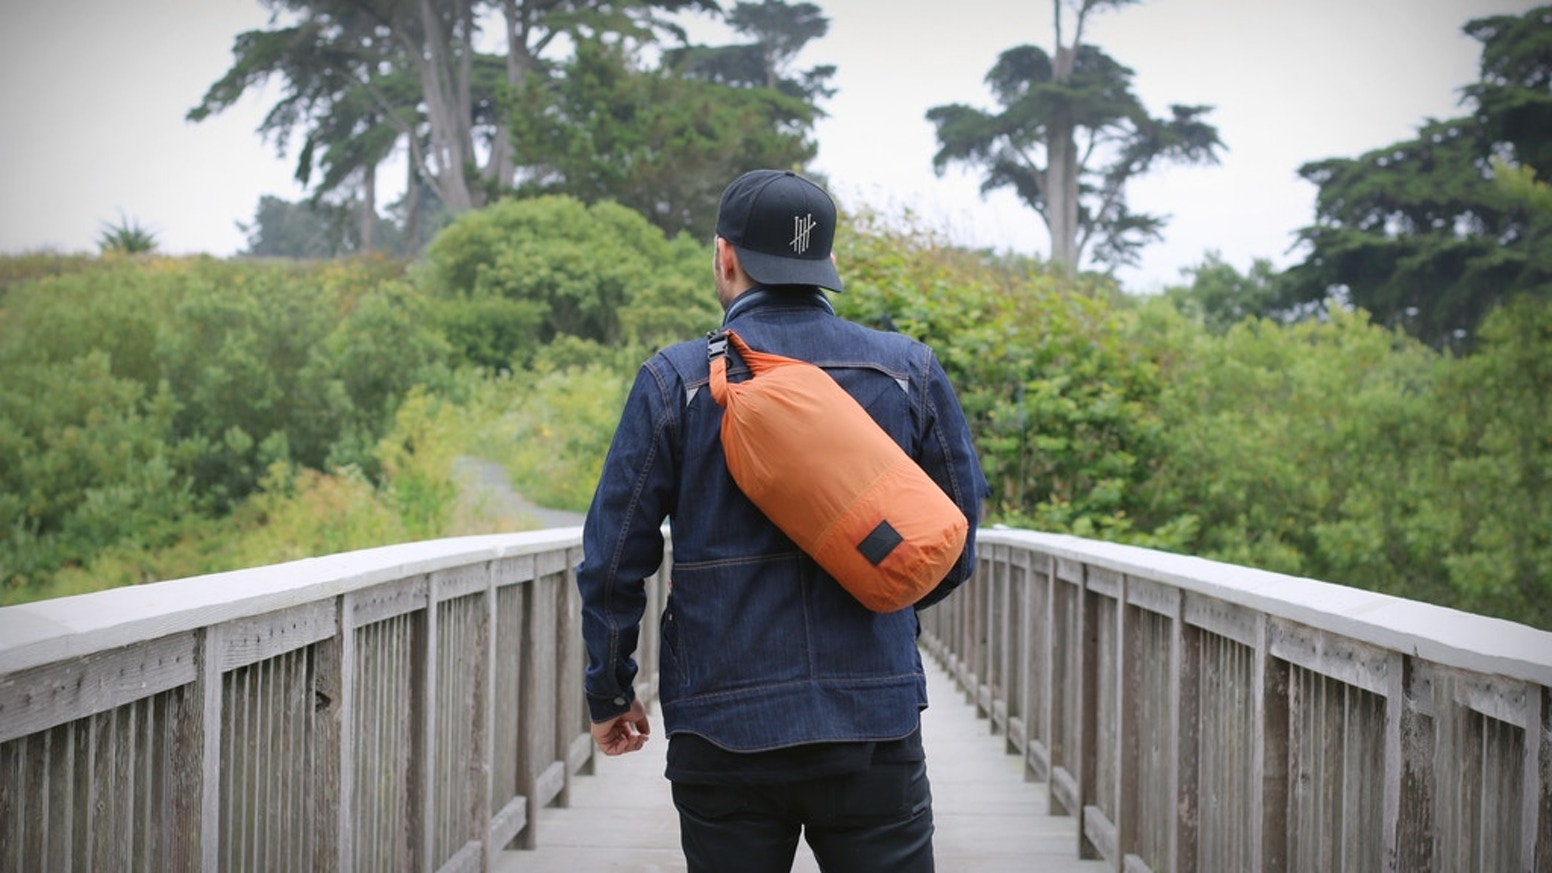 A revolutionary utility backpack with Regenerative FuseFabric™ - Ideal for EDC, Travel, or Gym.